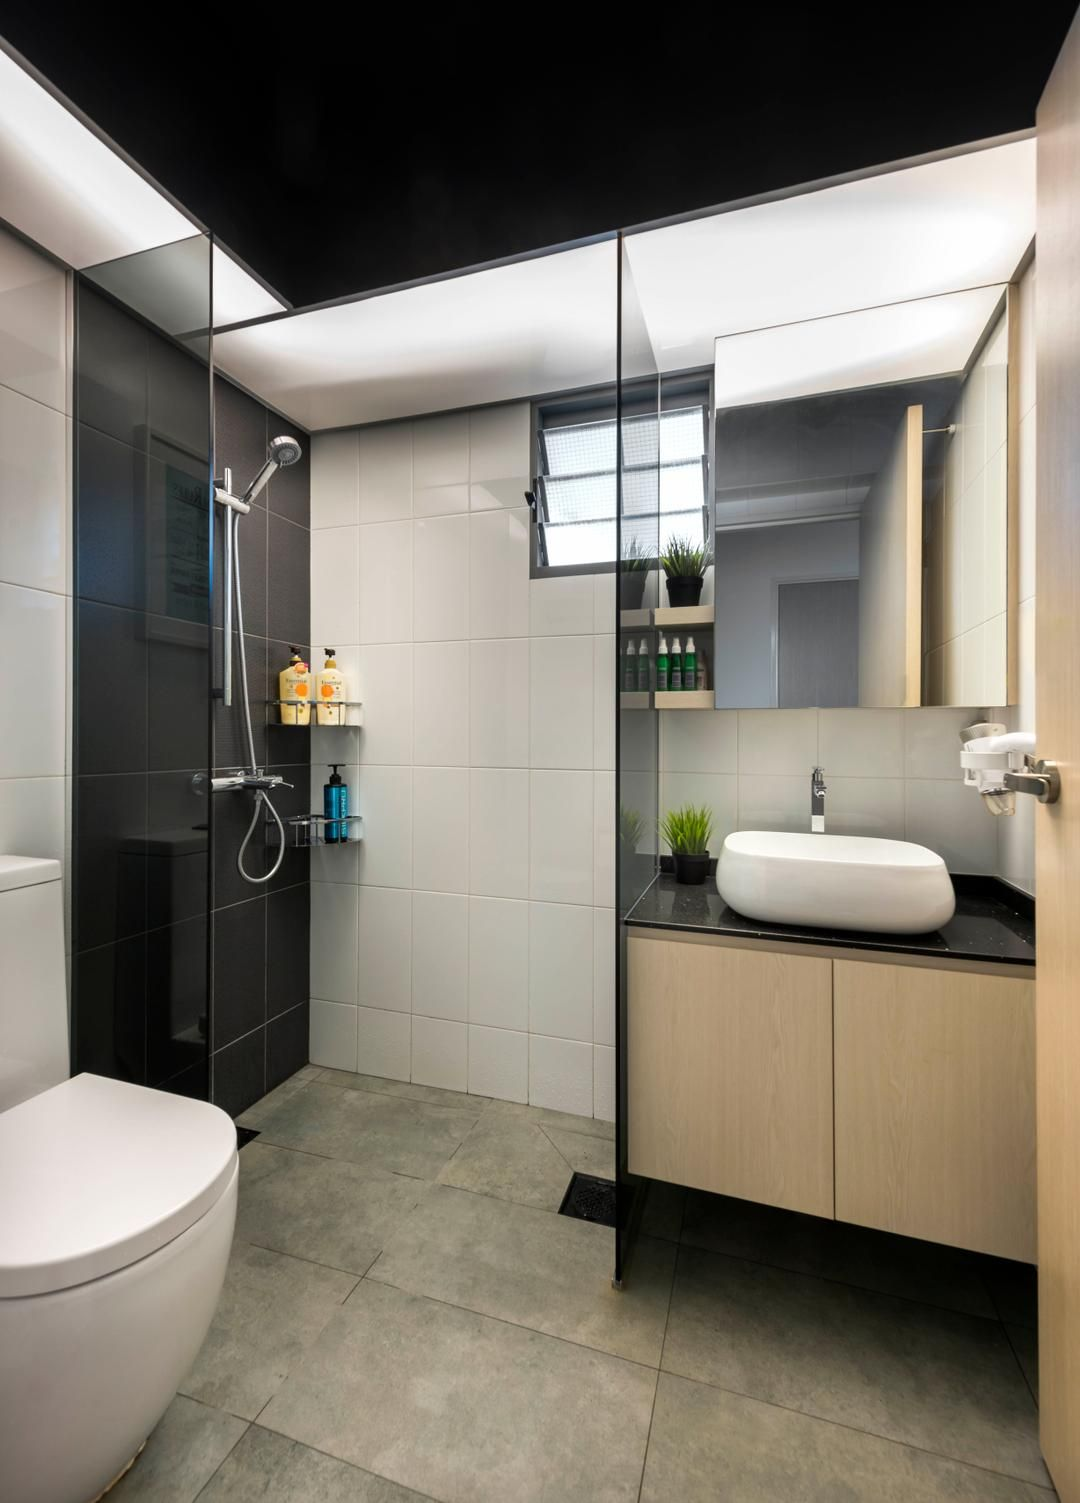 Check Out This Minimalistic Style Hdb Bathroom And Other Similar Styles On Qanvast Minimalist Bathroom Minimalist Toilets Bathroom Design